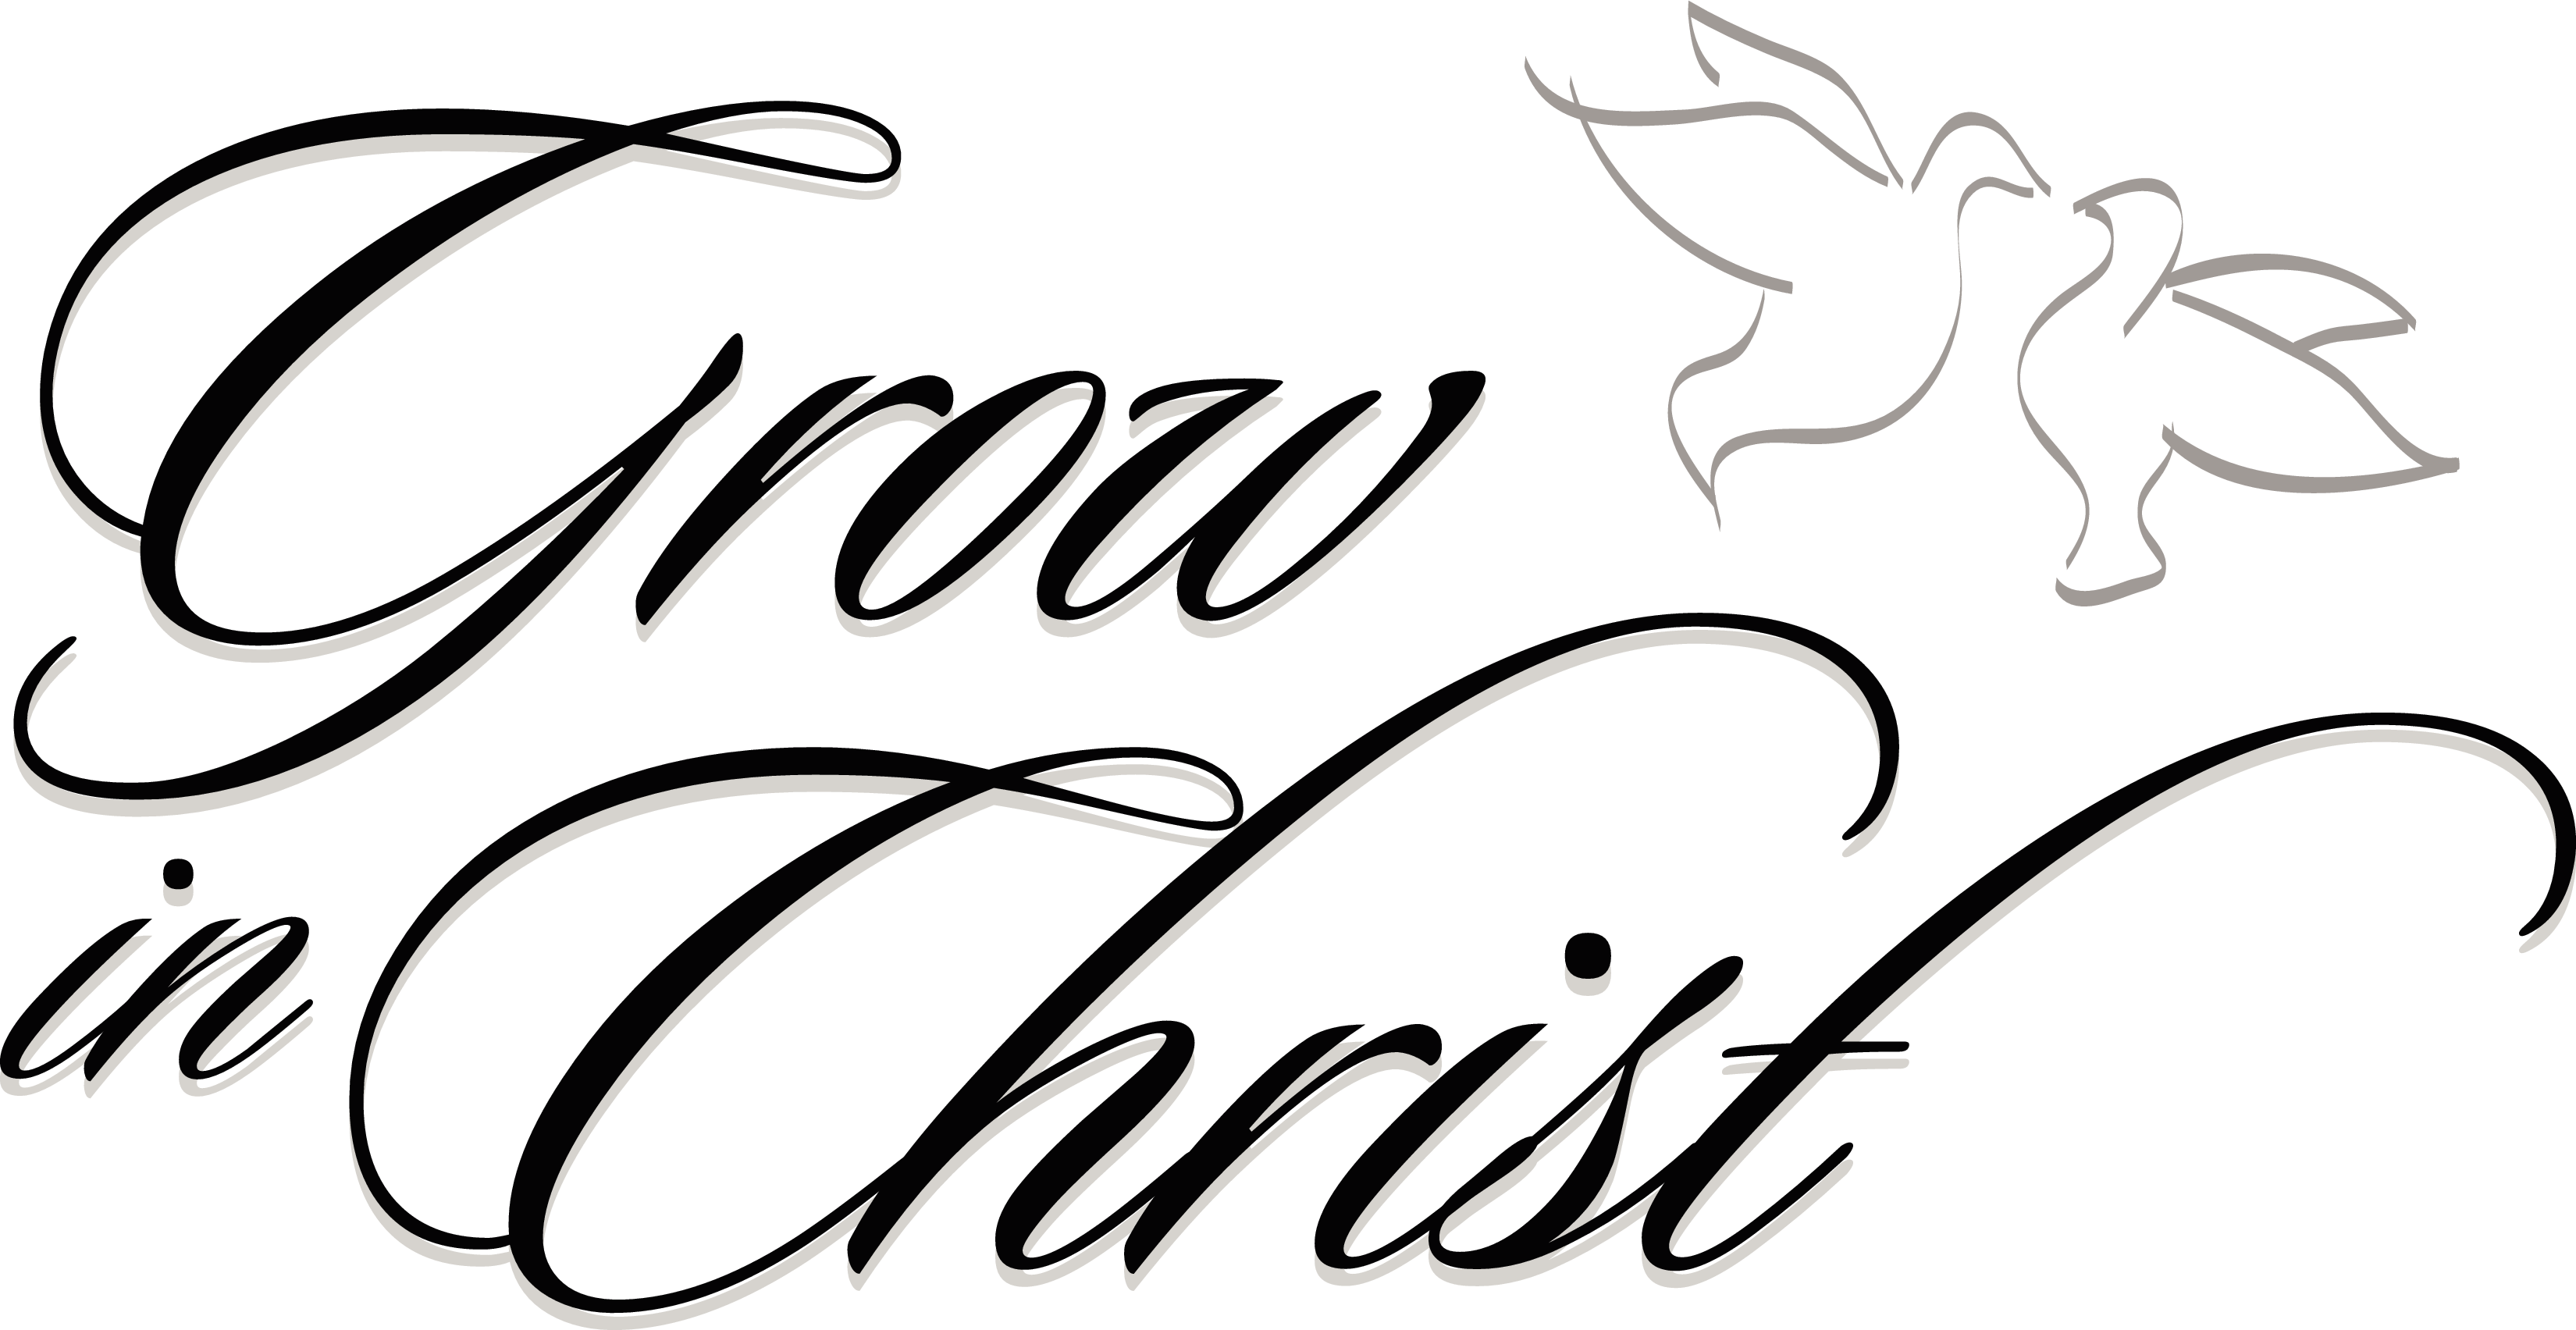 3300x1704 Religious Free Christian Clipart Images Clipart Image 7 2 Image 2